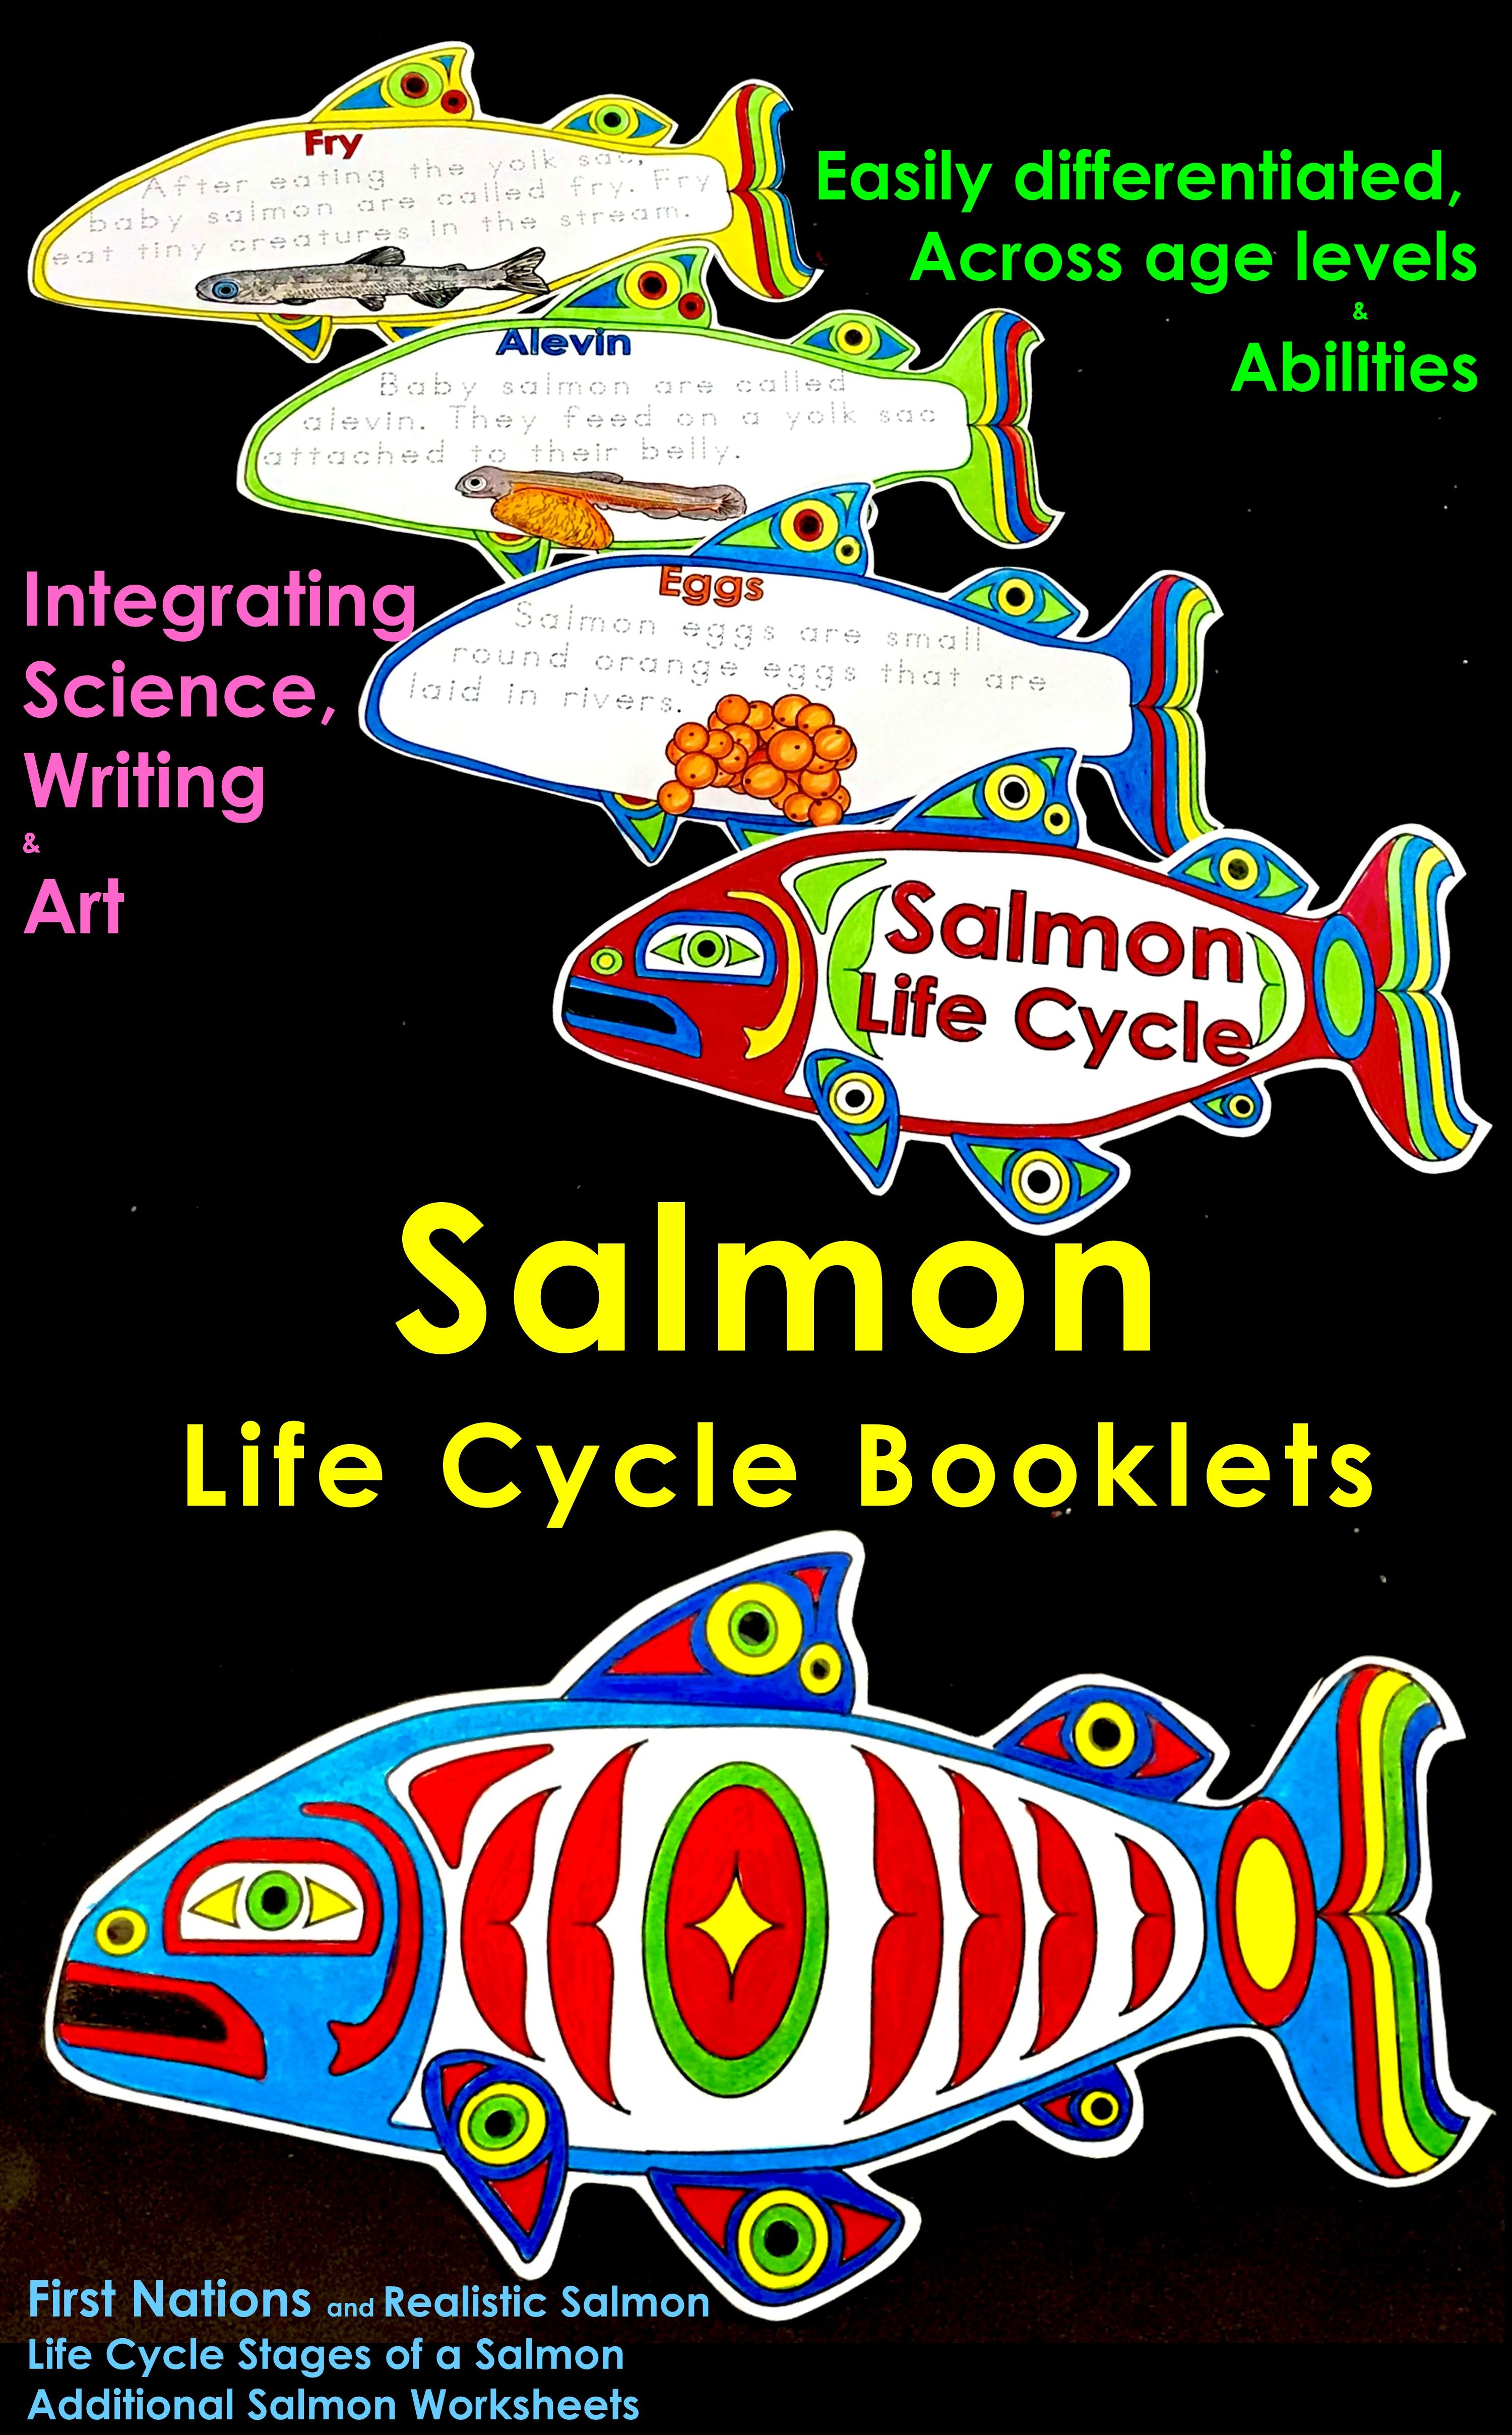 Salmon Life Cycle Salmon Craft Salmon Shape Booklet Life Cycles Writing Art Winter Crafts